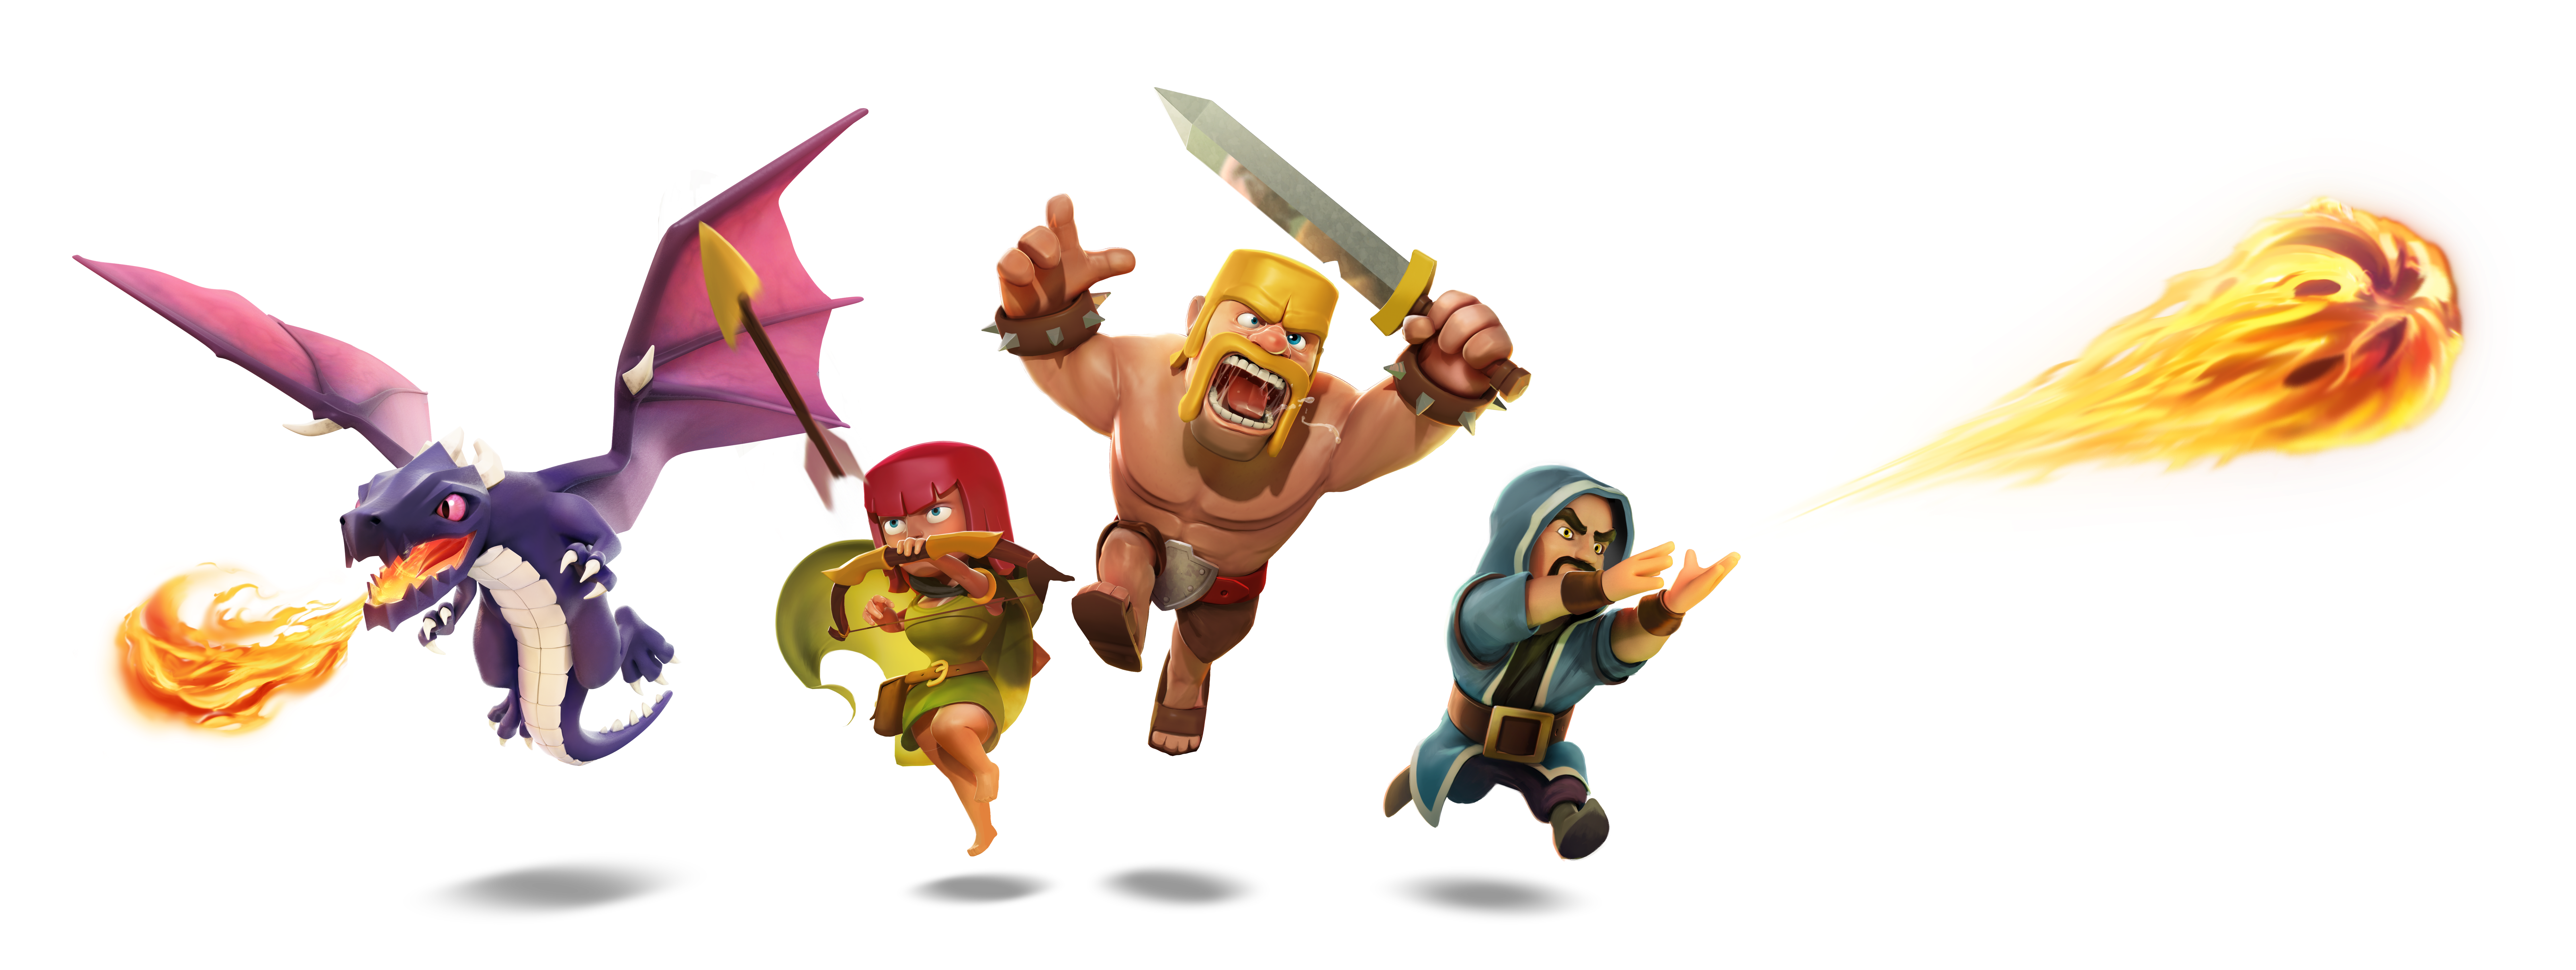 Clash of Clans characters2png 11317x4262